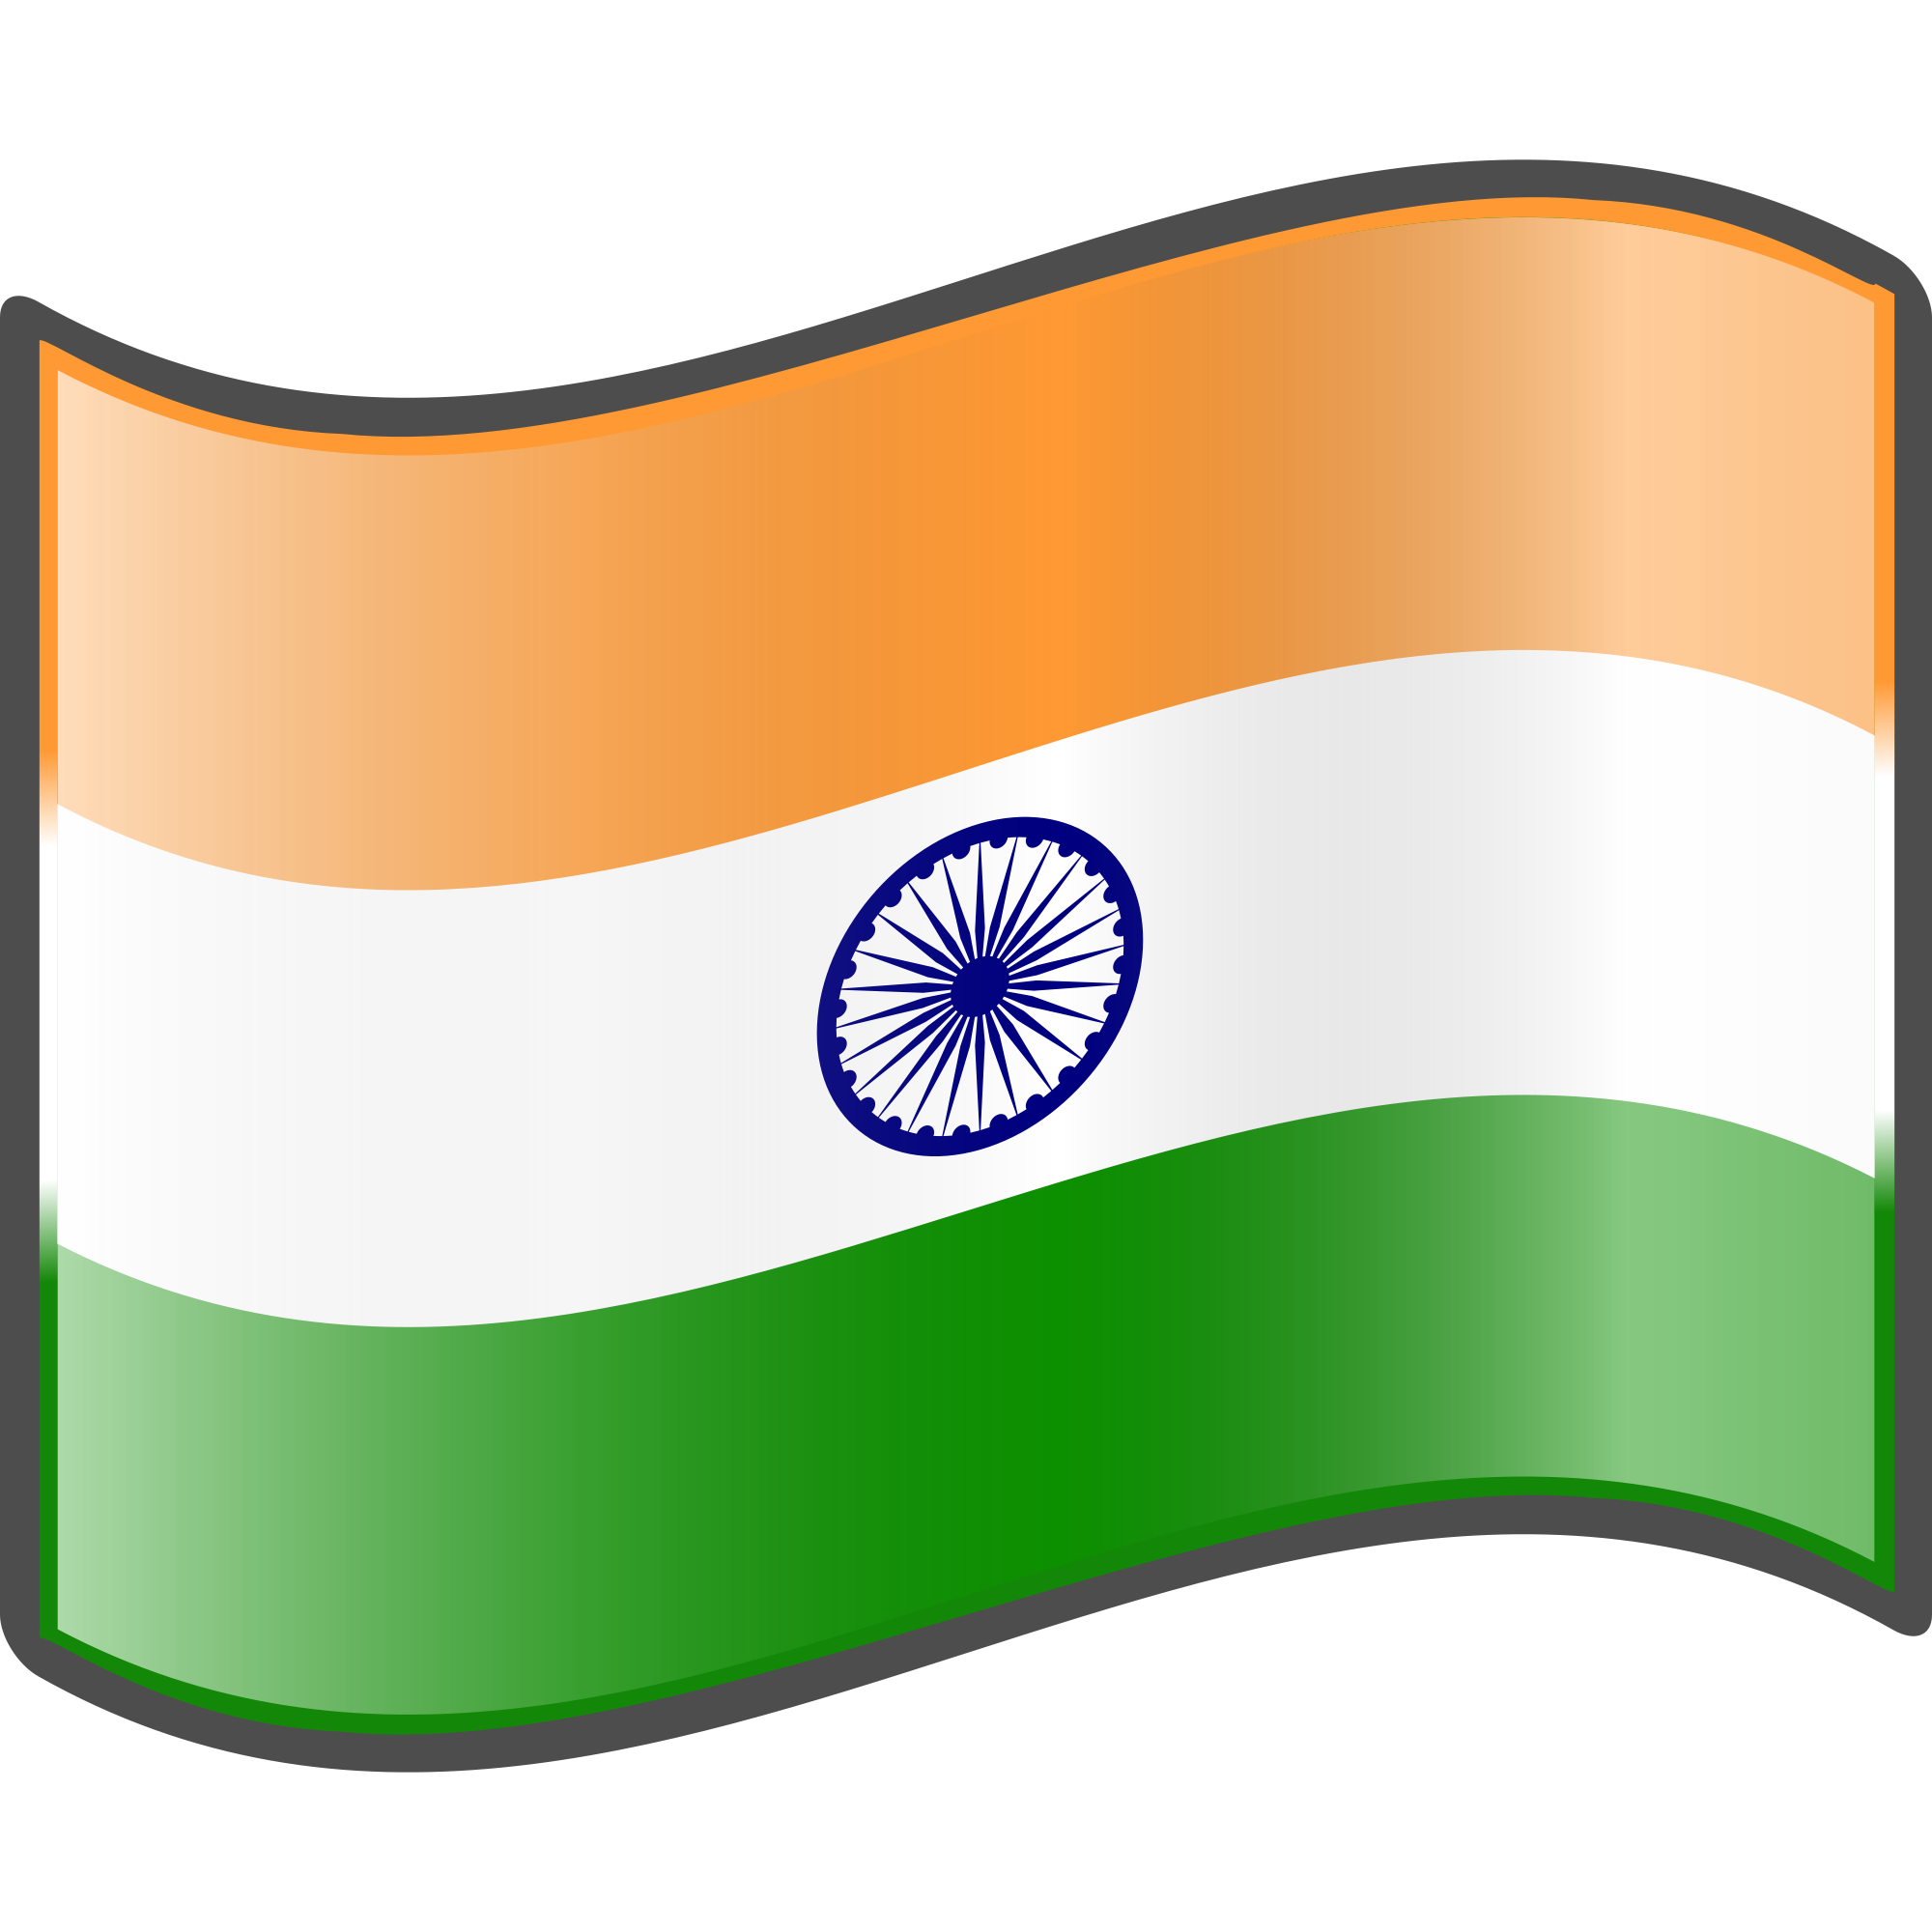 Svg flags national. File nuvola indian flag